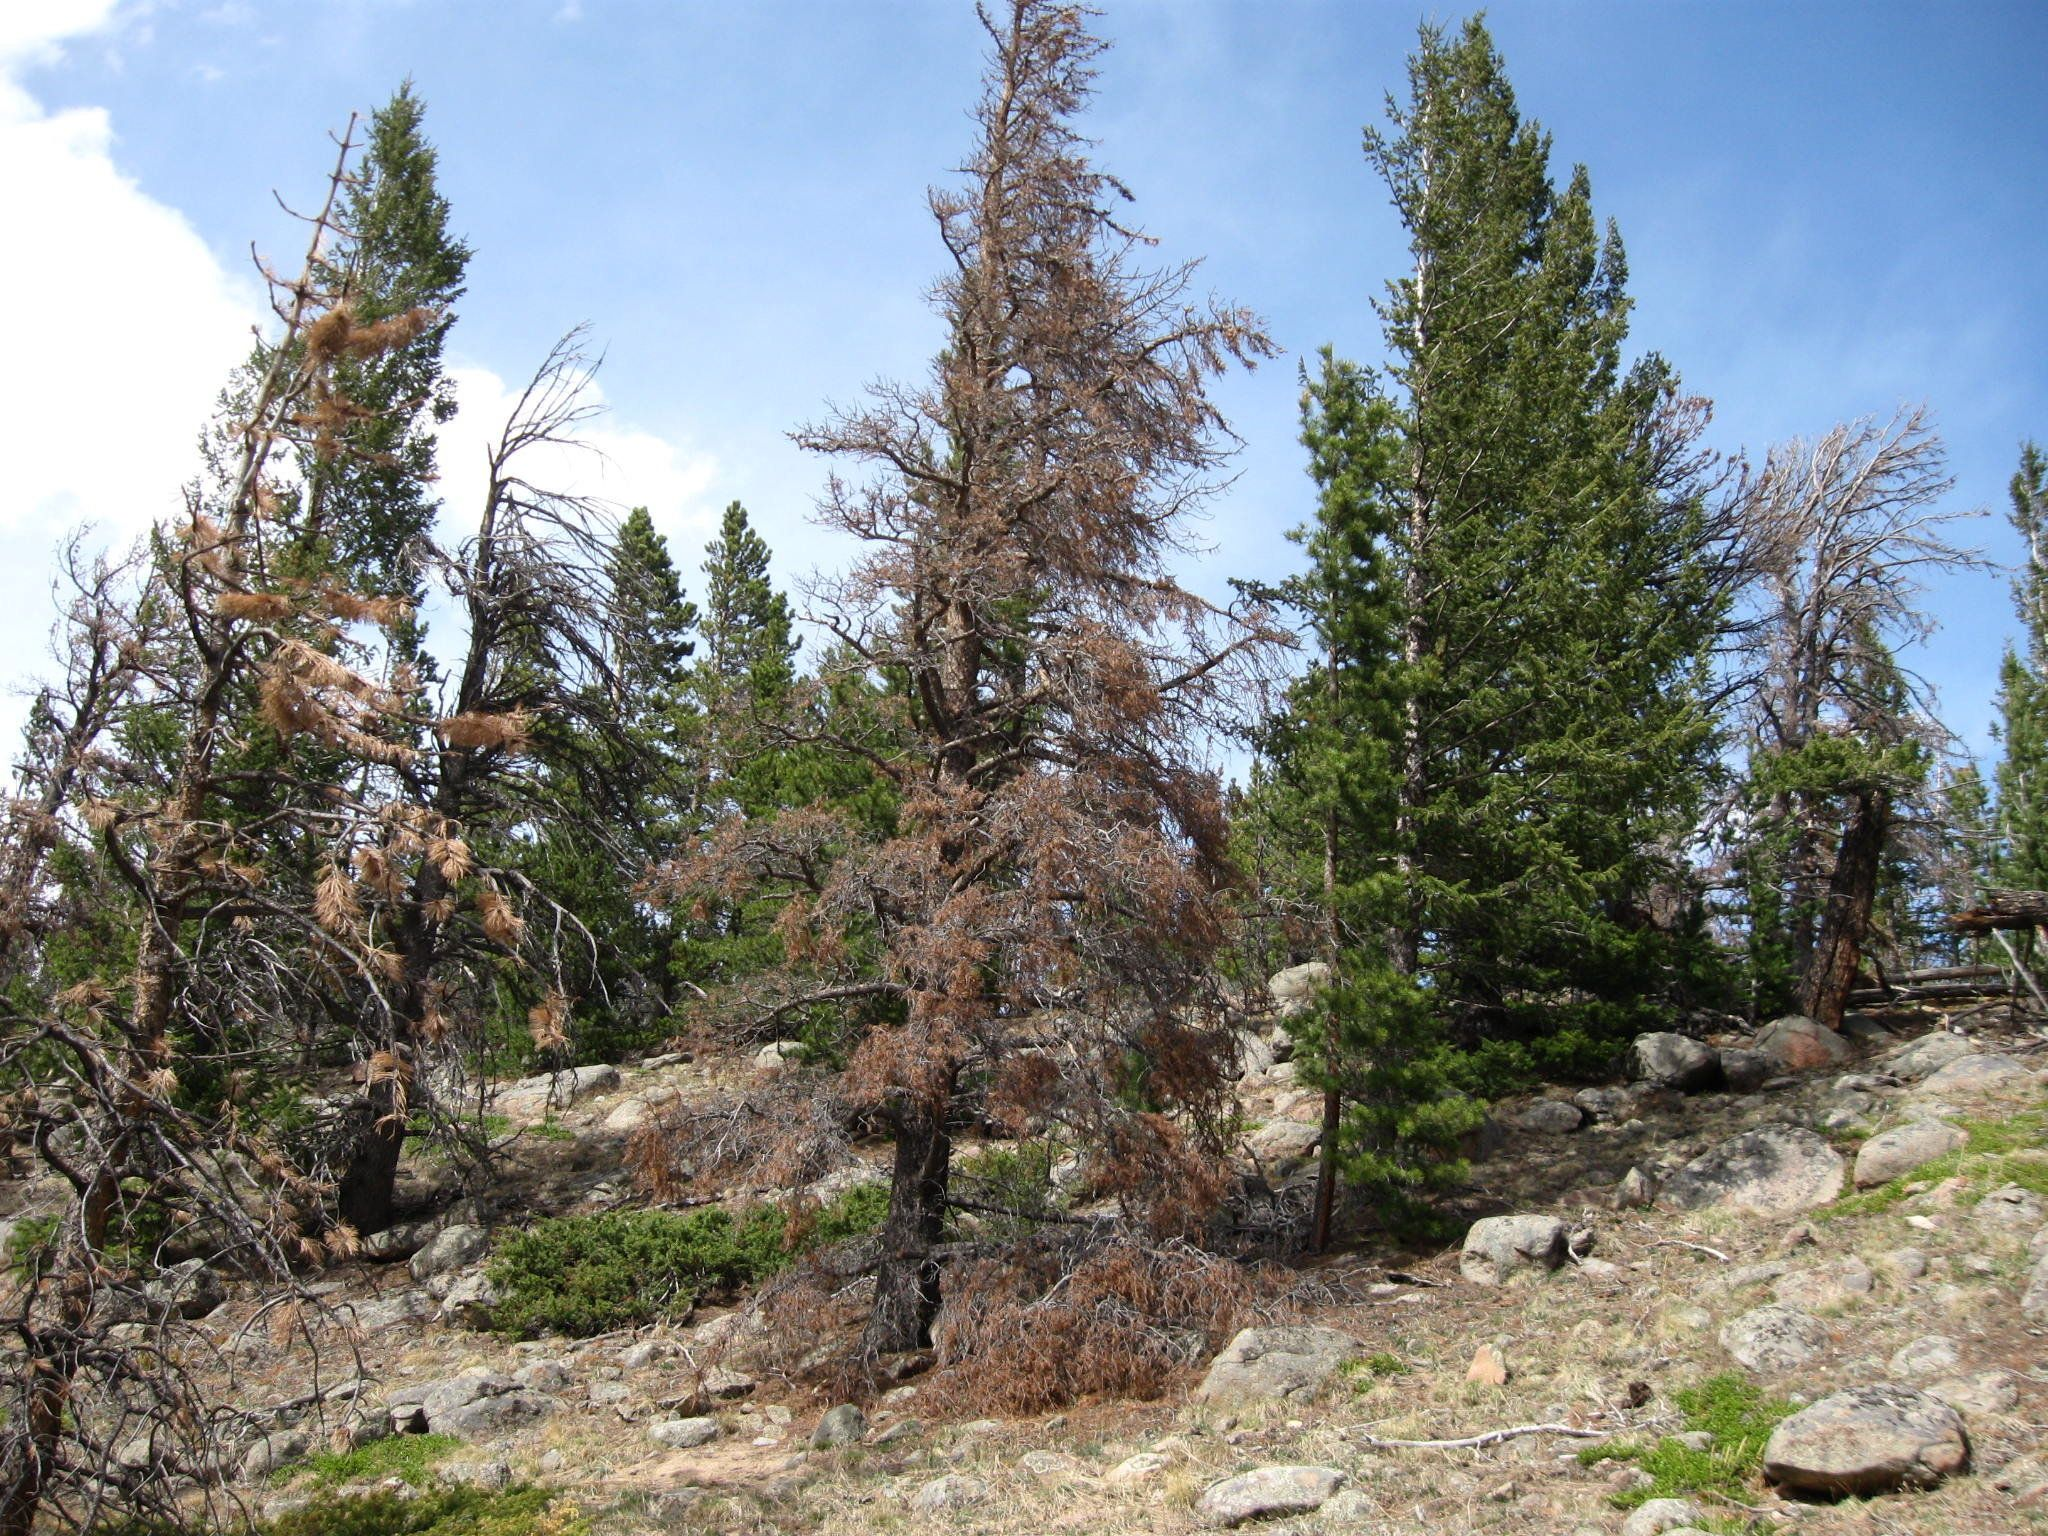 This stand of conifers in Rocky Mountain National Park includes some thathave turned red after being infested by mounta